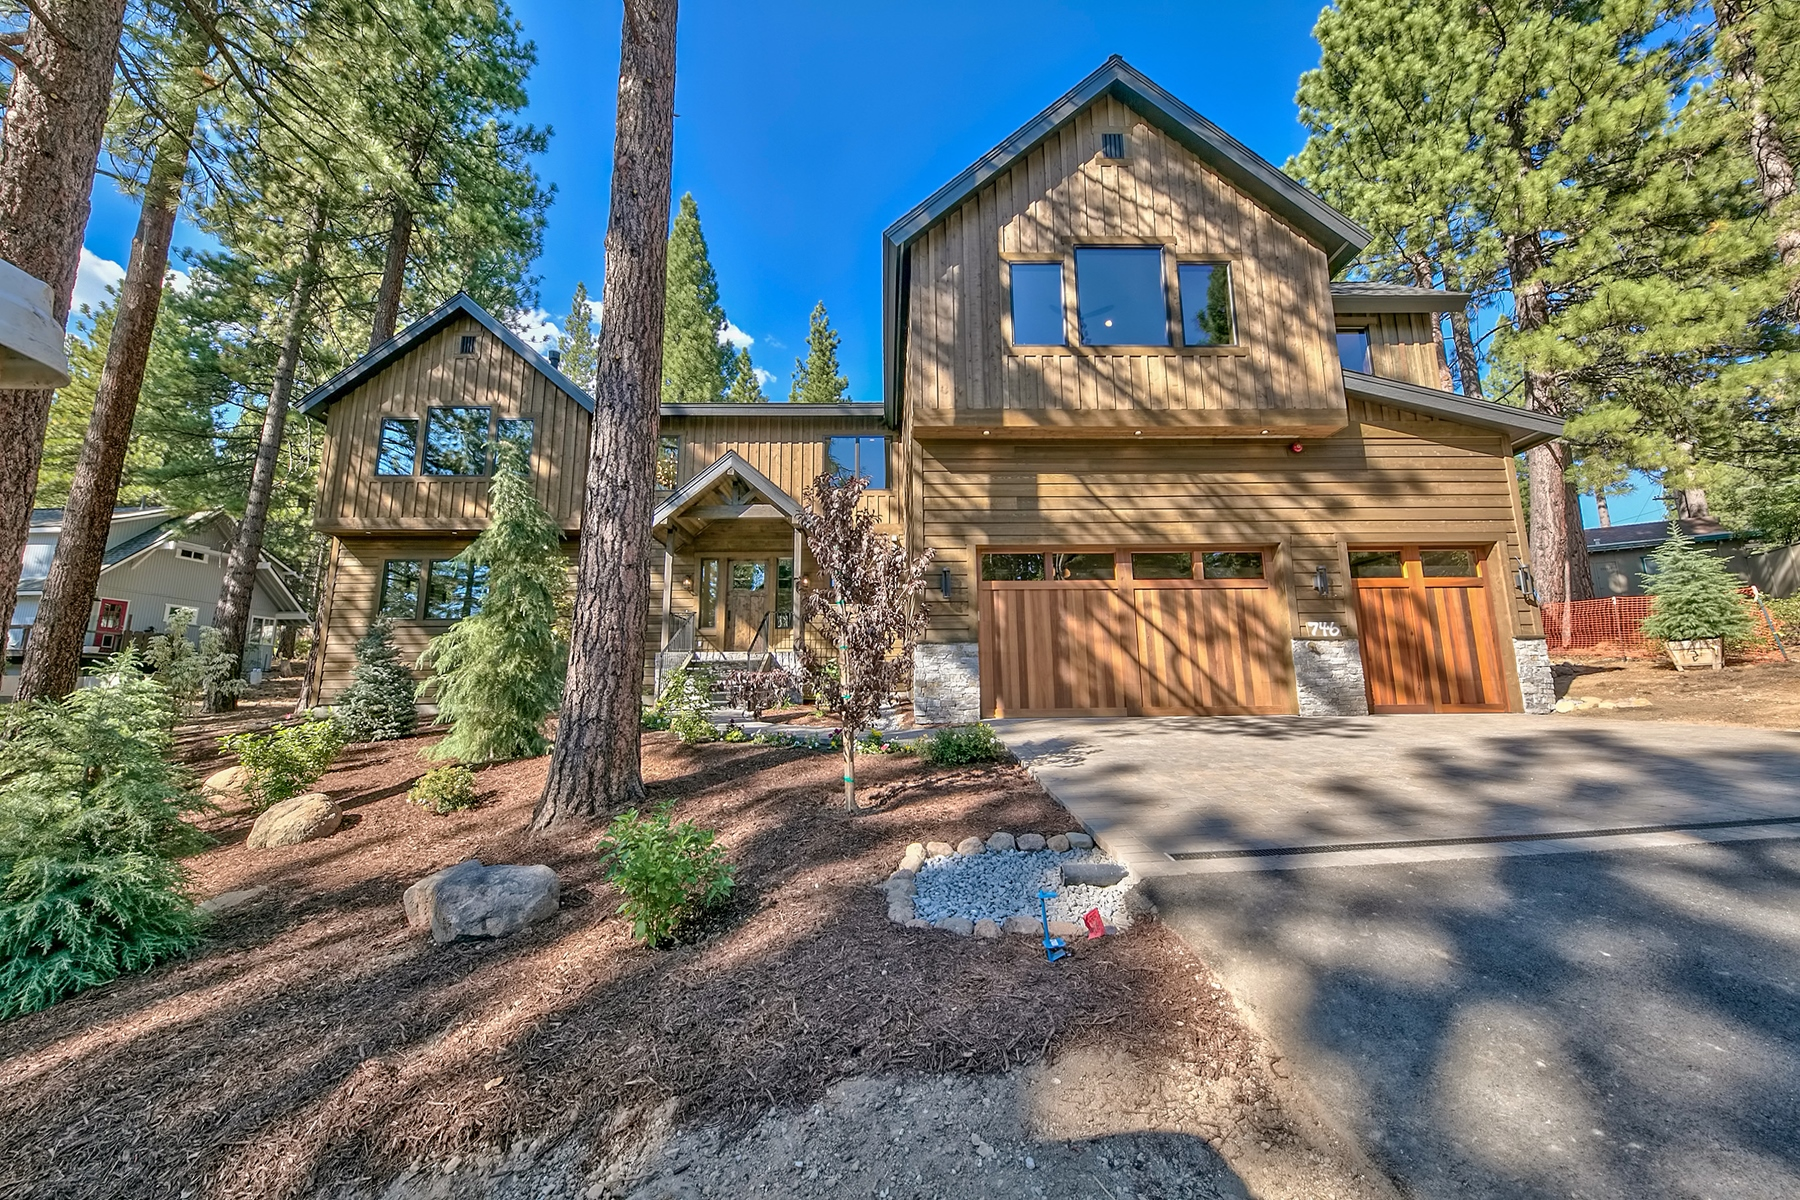 Additional photo for property listing at 746 Kelly Drive, Incline Village, Nevada 746 Kelly Drive Incline Village, Nevada 89451 United States